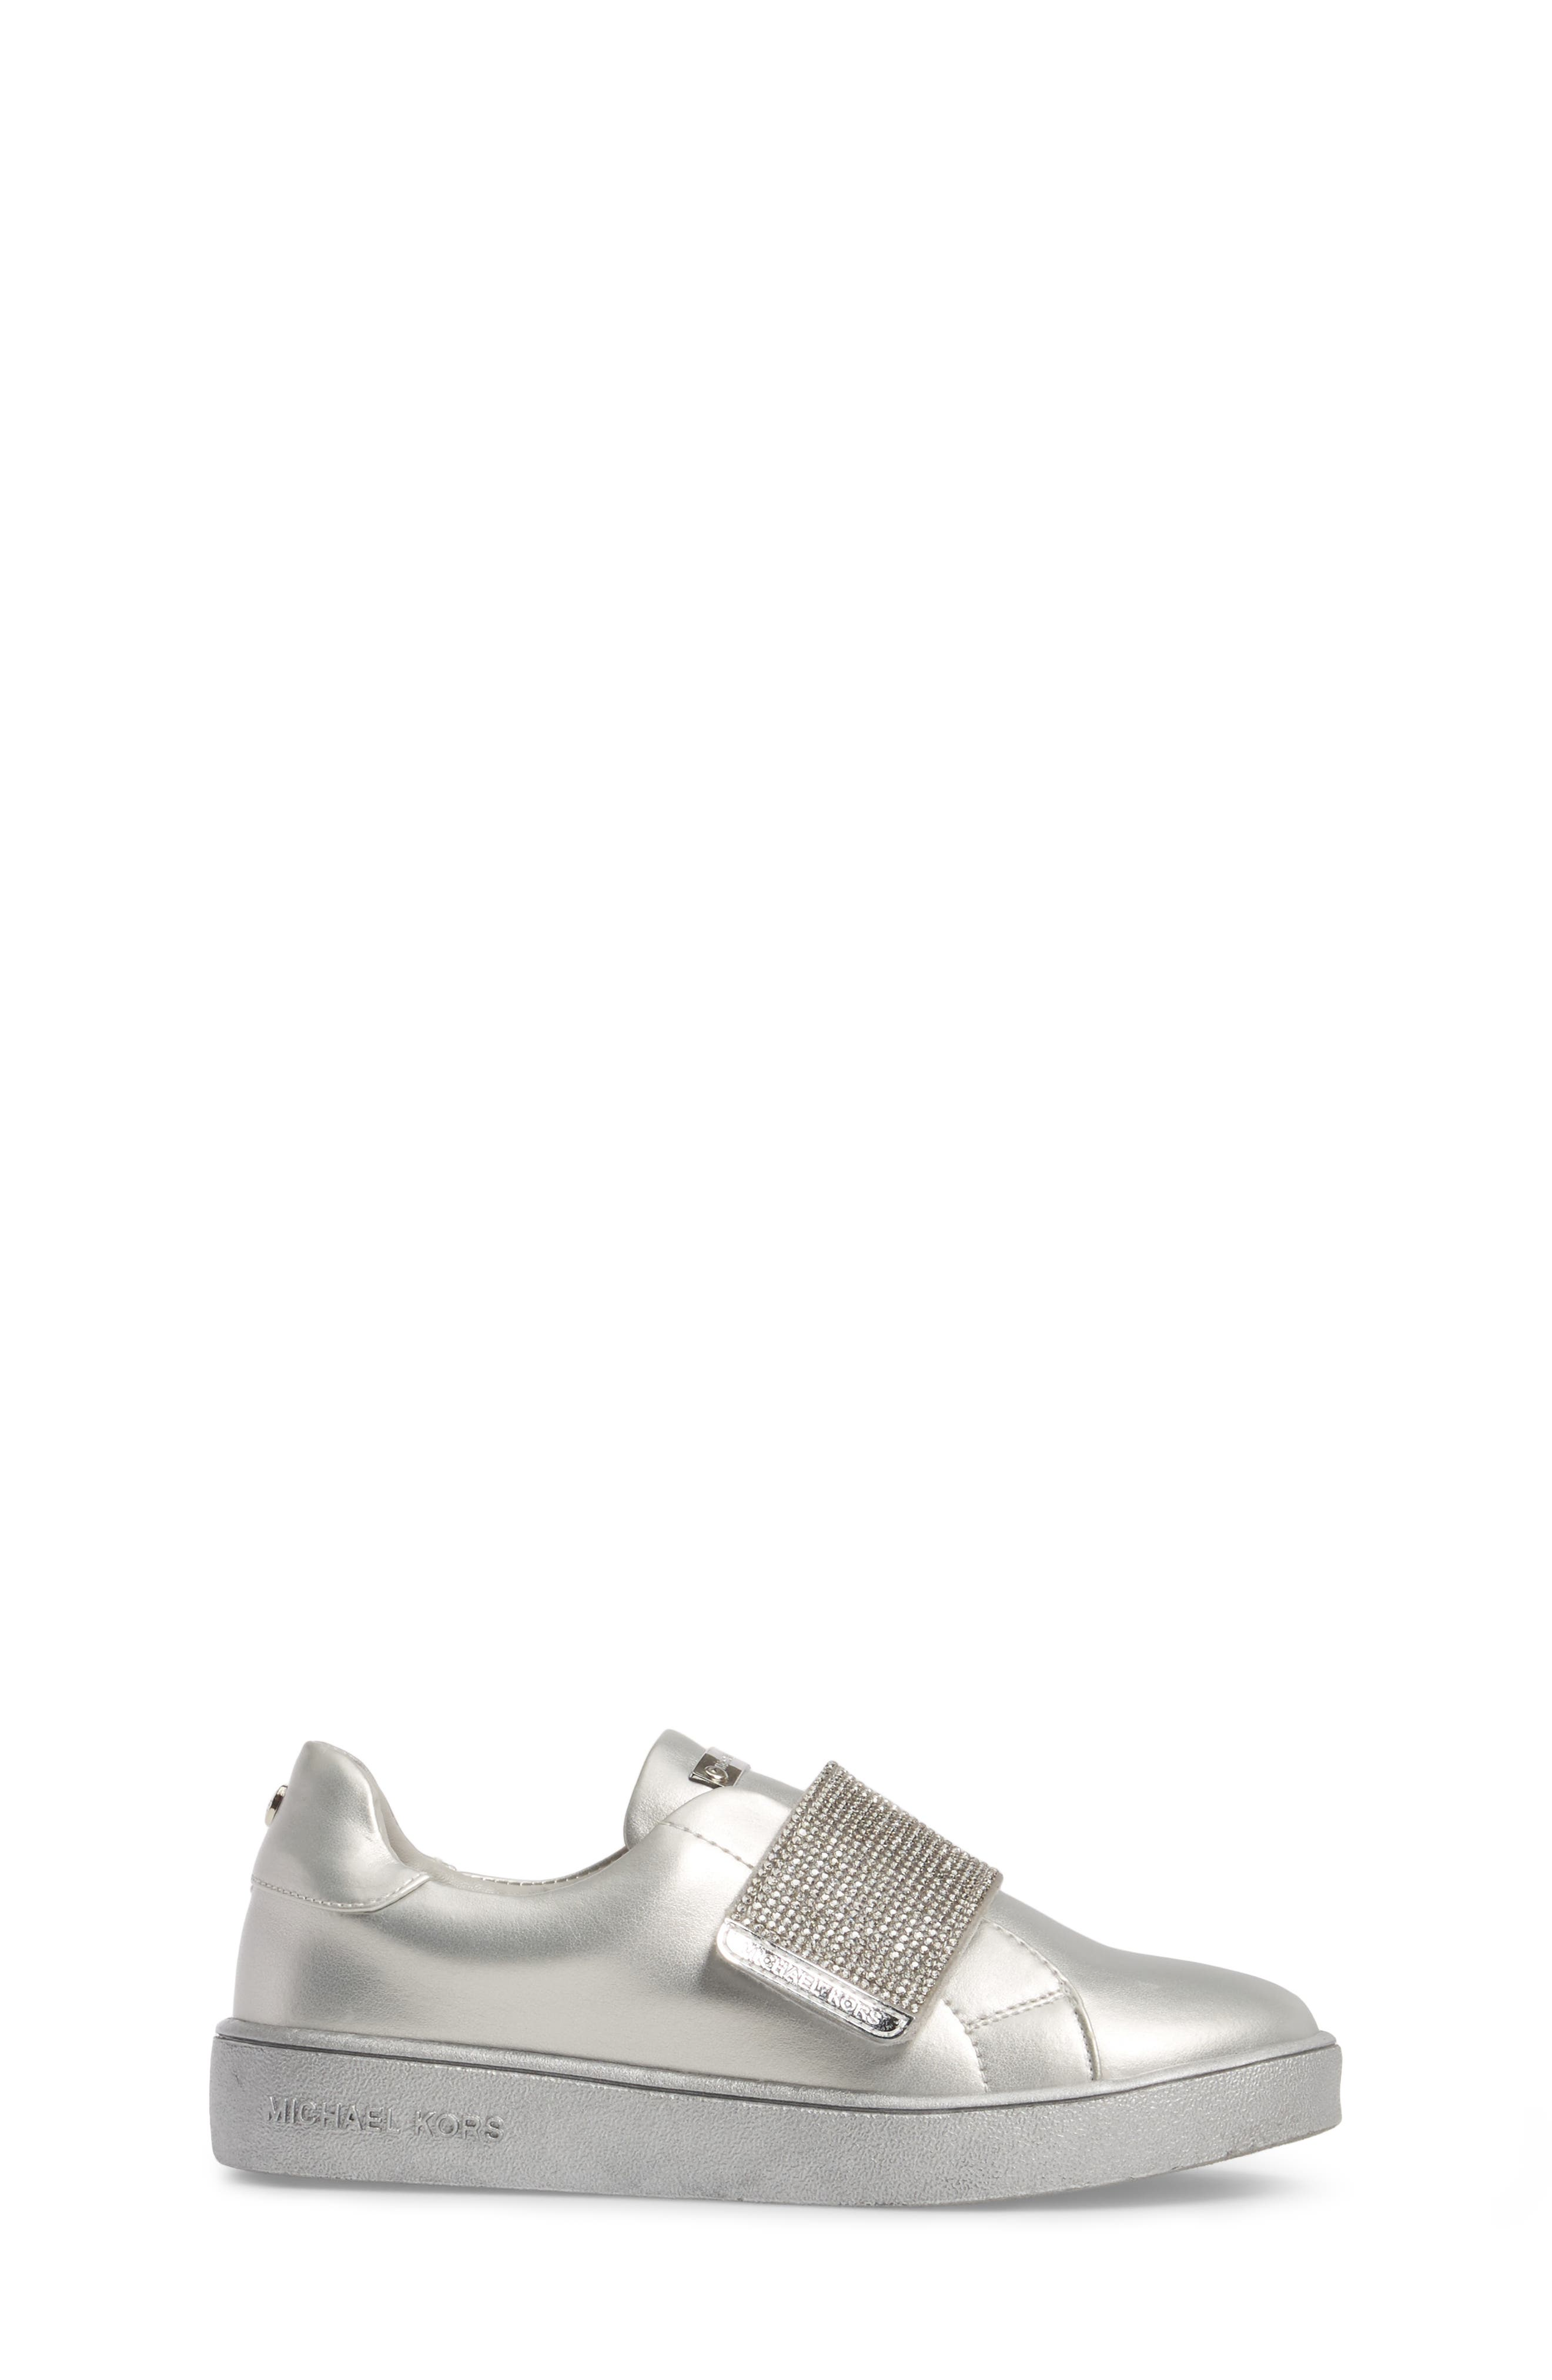 Ivy Candy Sneaker,                             Alternate thumbnail 7, color,